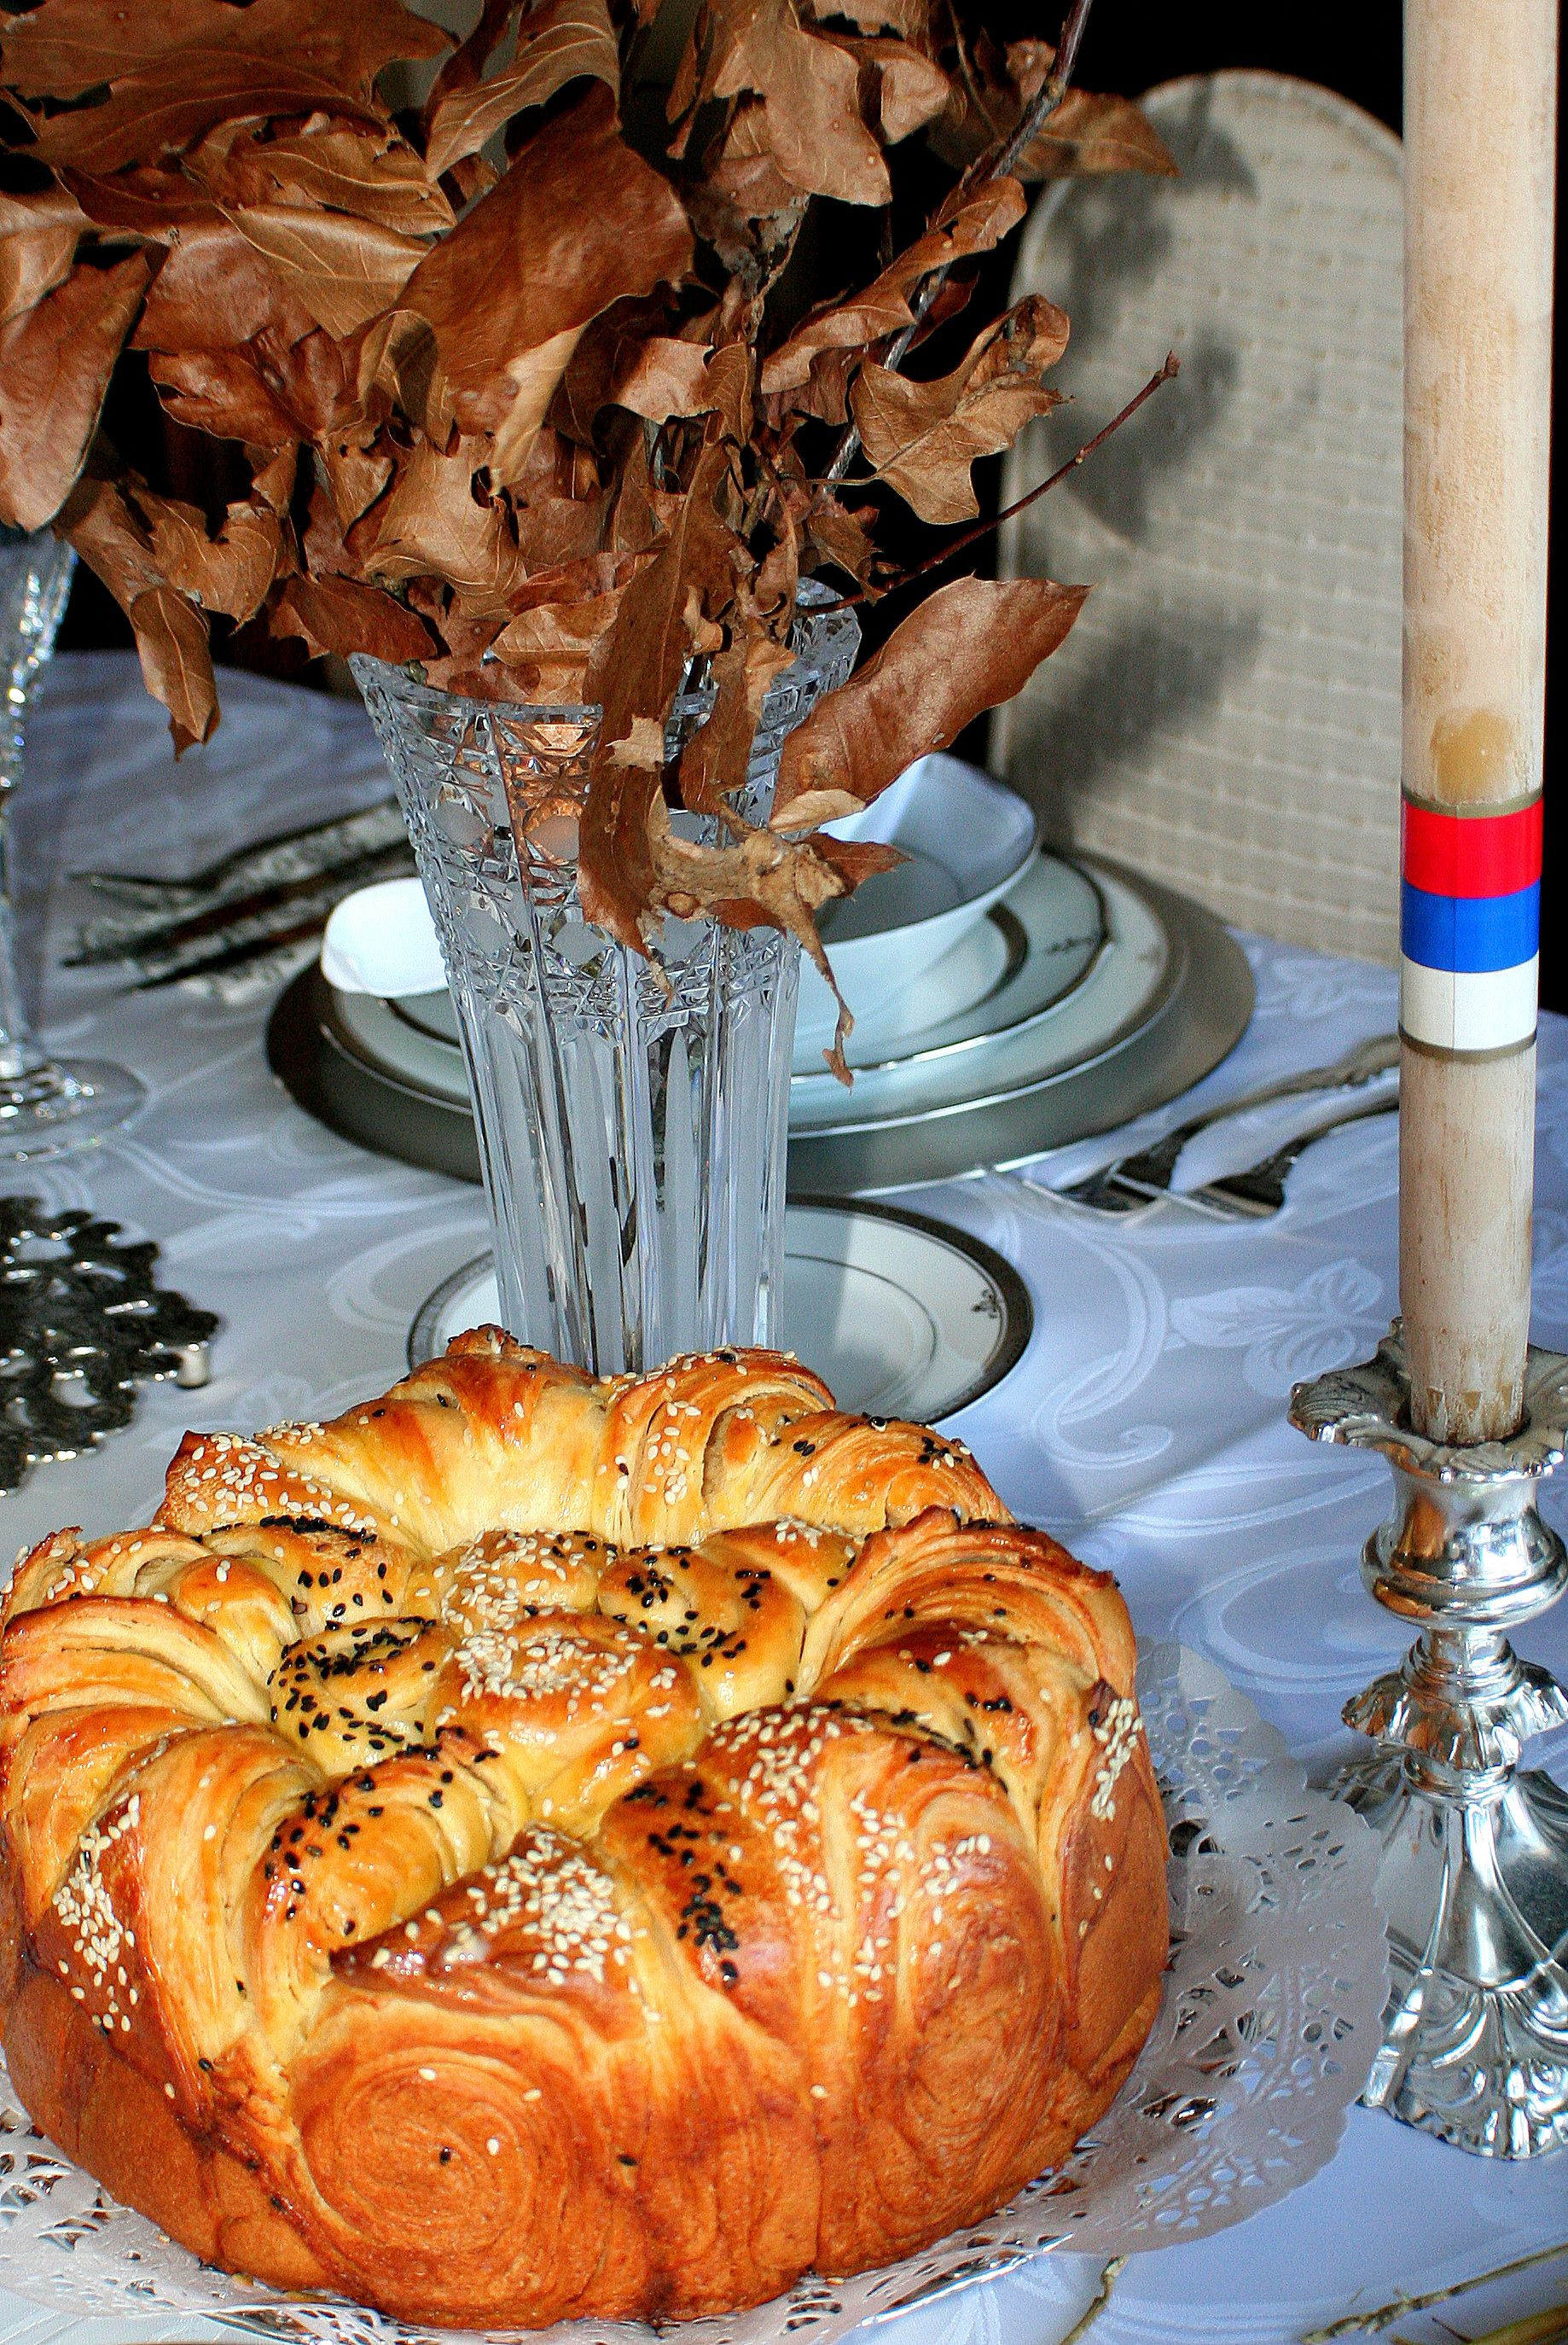 Serbian Christmas Bread  A česnica is the ceremonial round loaf of bread that is